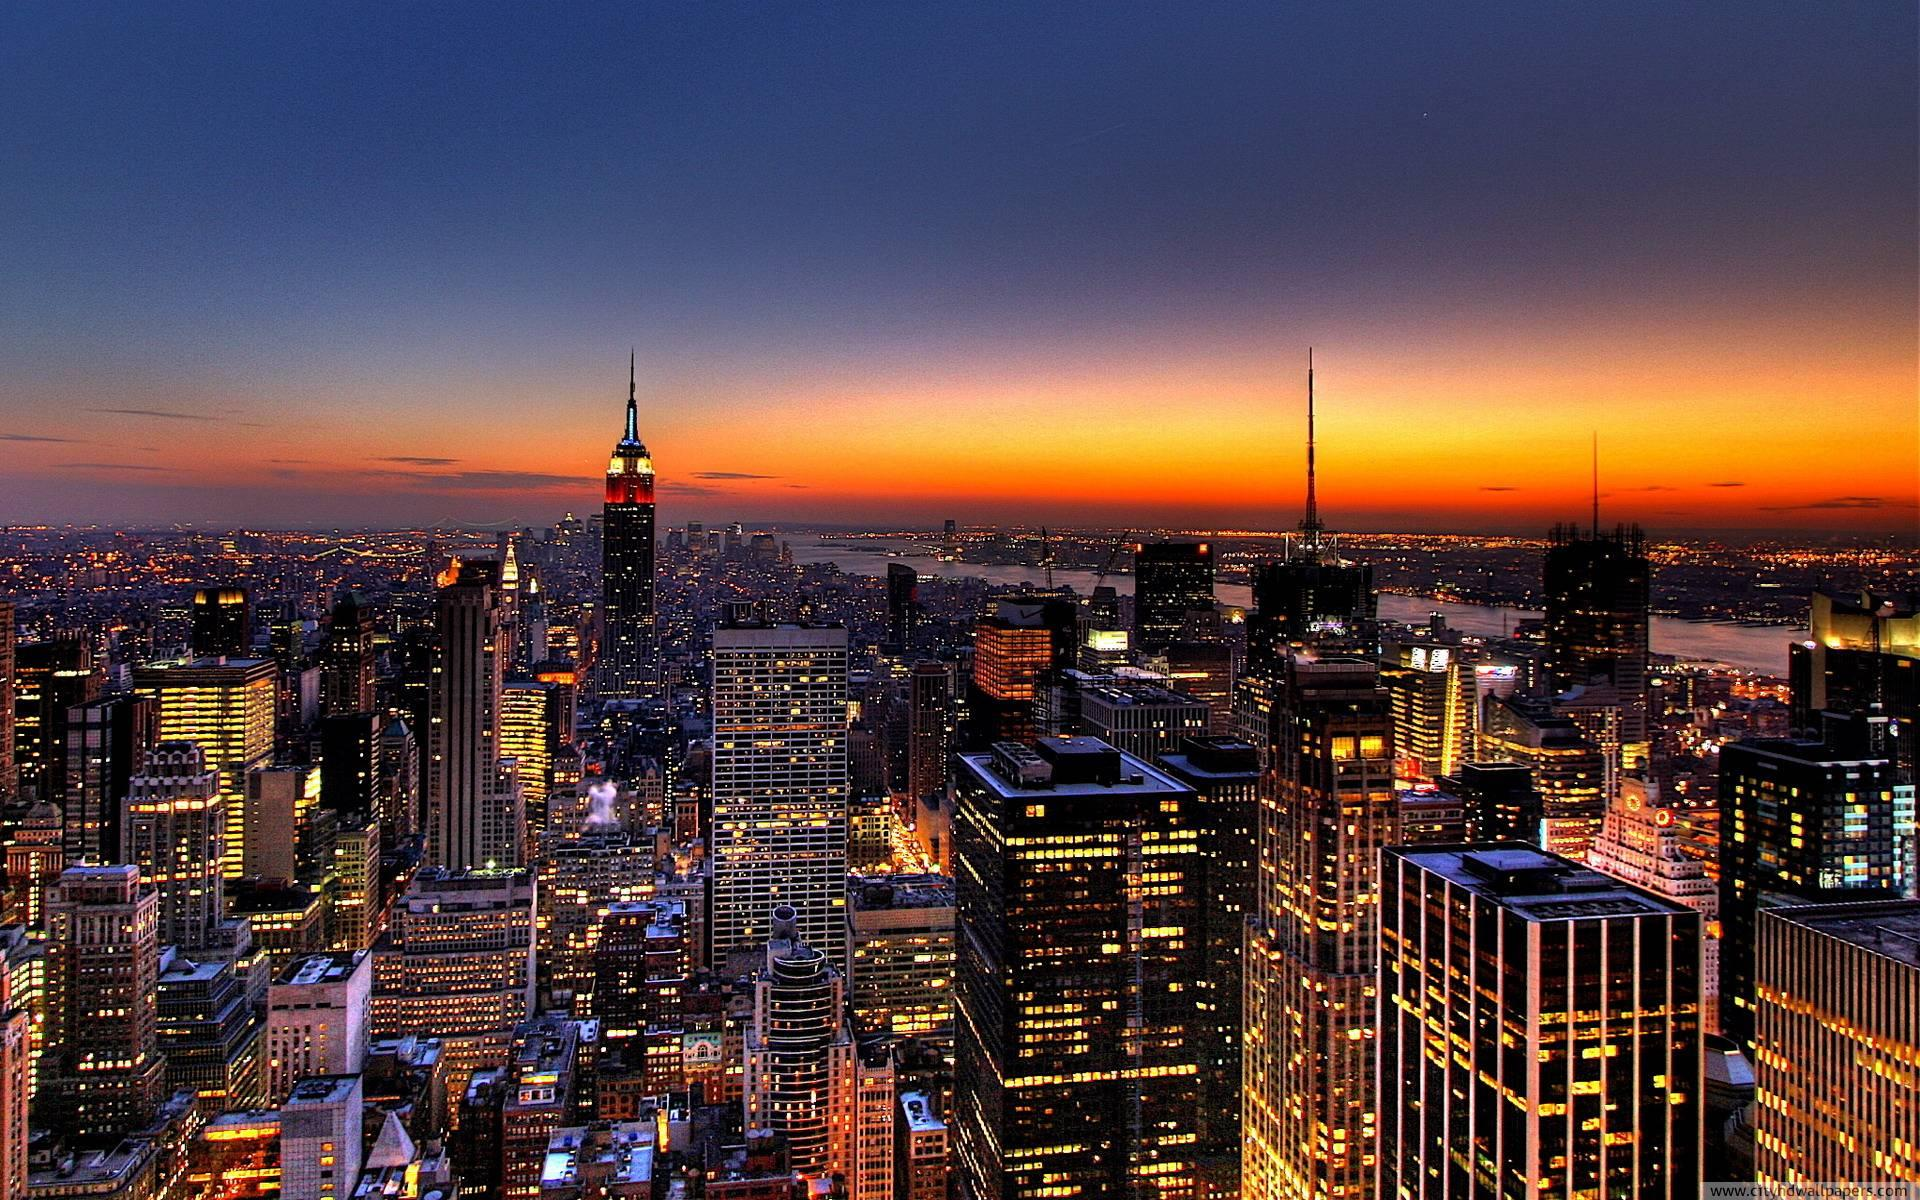 new york usa city hd wallpaper more about new york and usa city